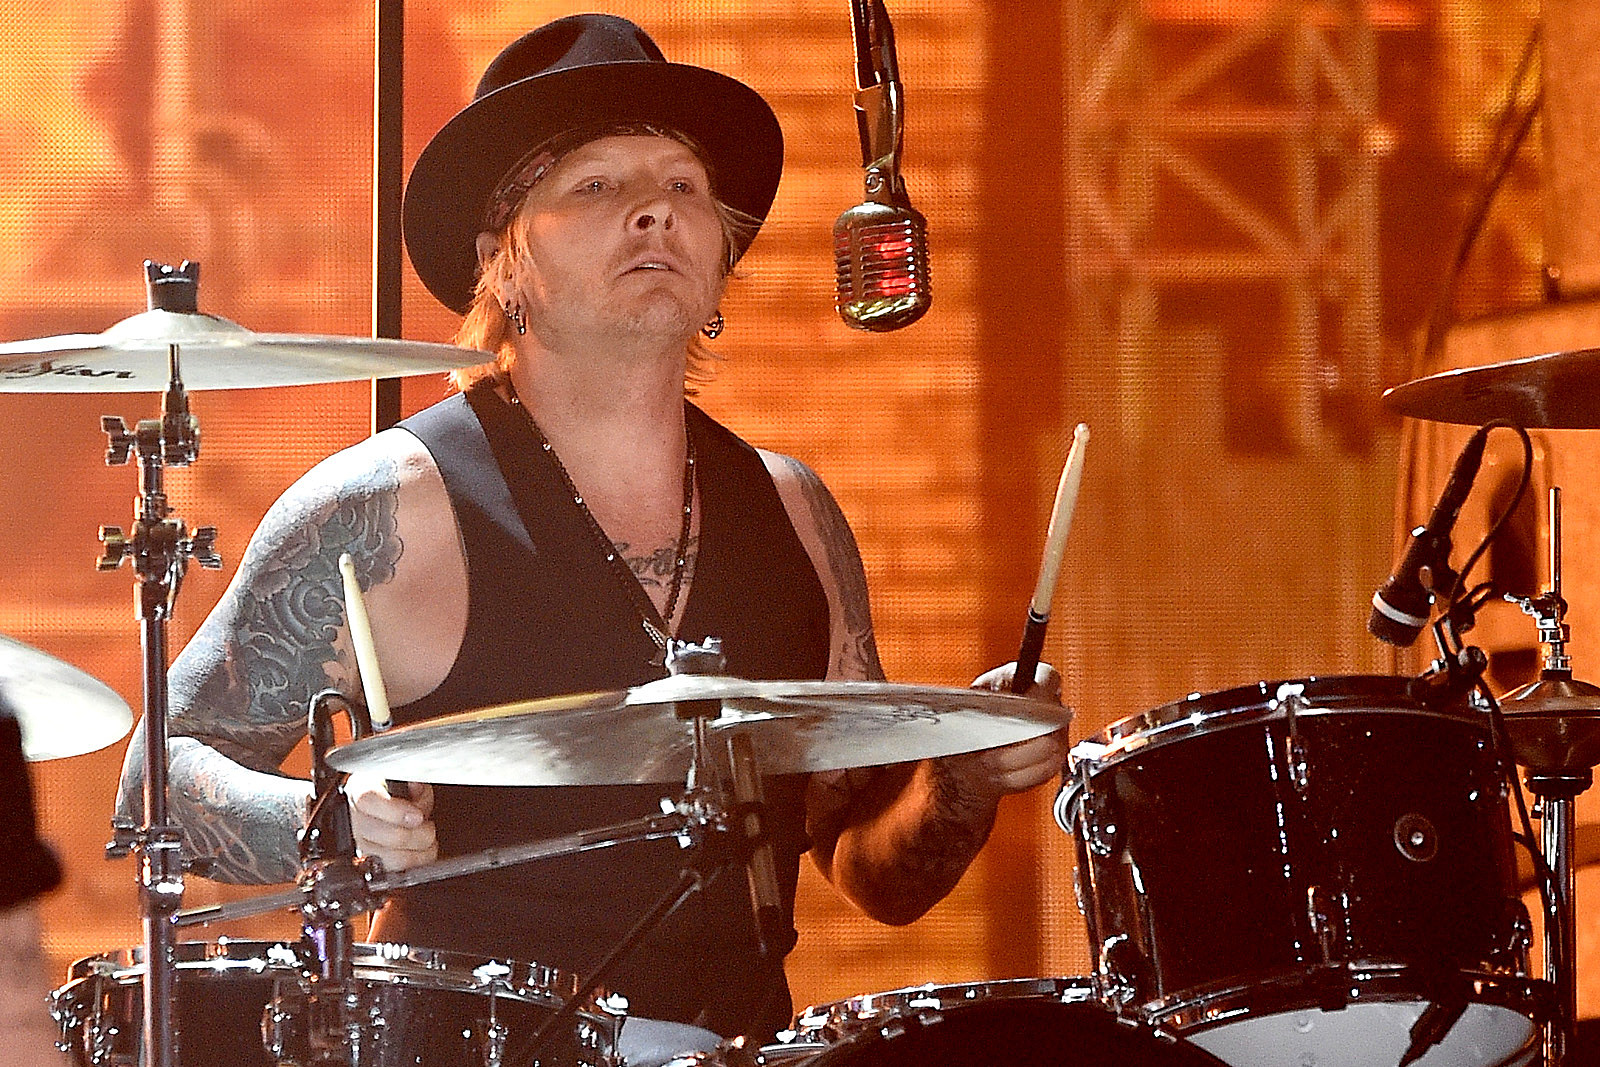 Matt Sorum Explains Why He S Leaving The Hollywood Vampires